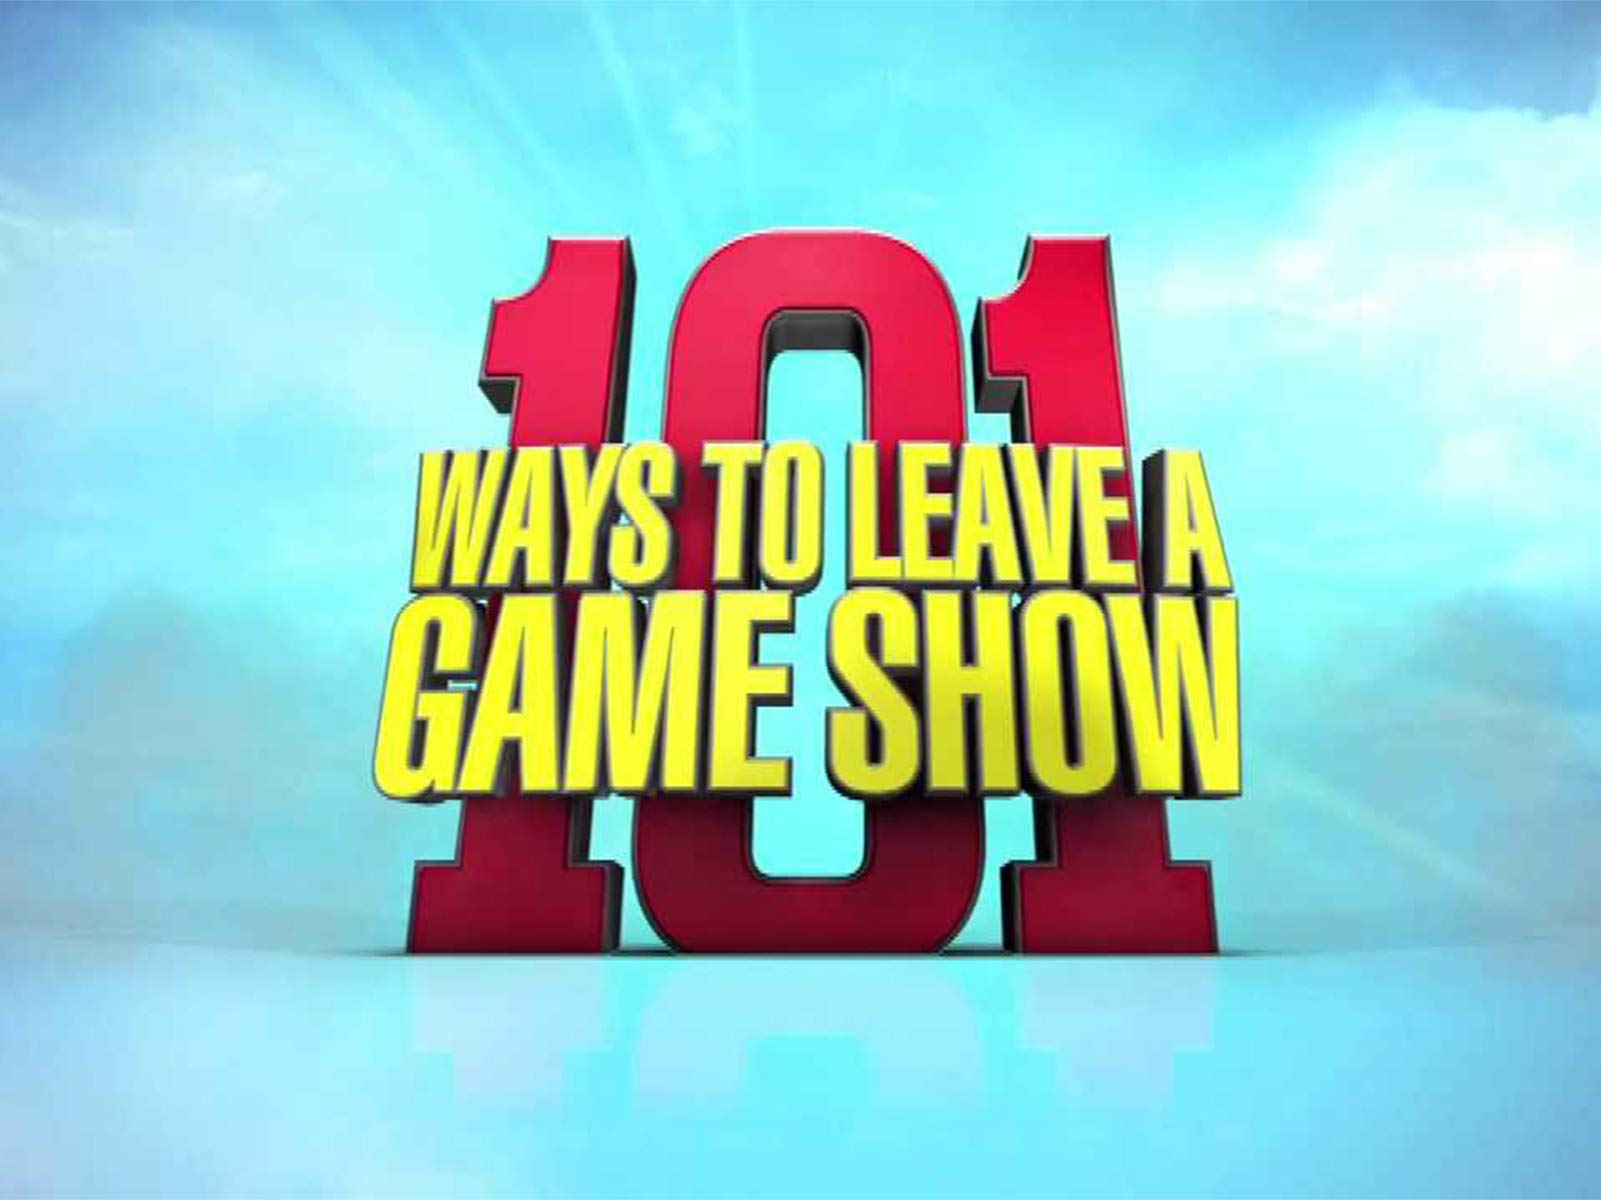 101 Ways To Leave A Gameshow on Amazon Prime Video UK